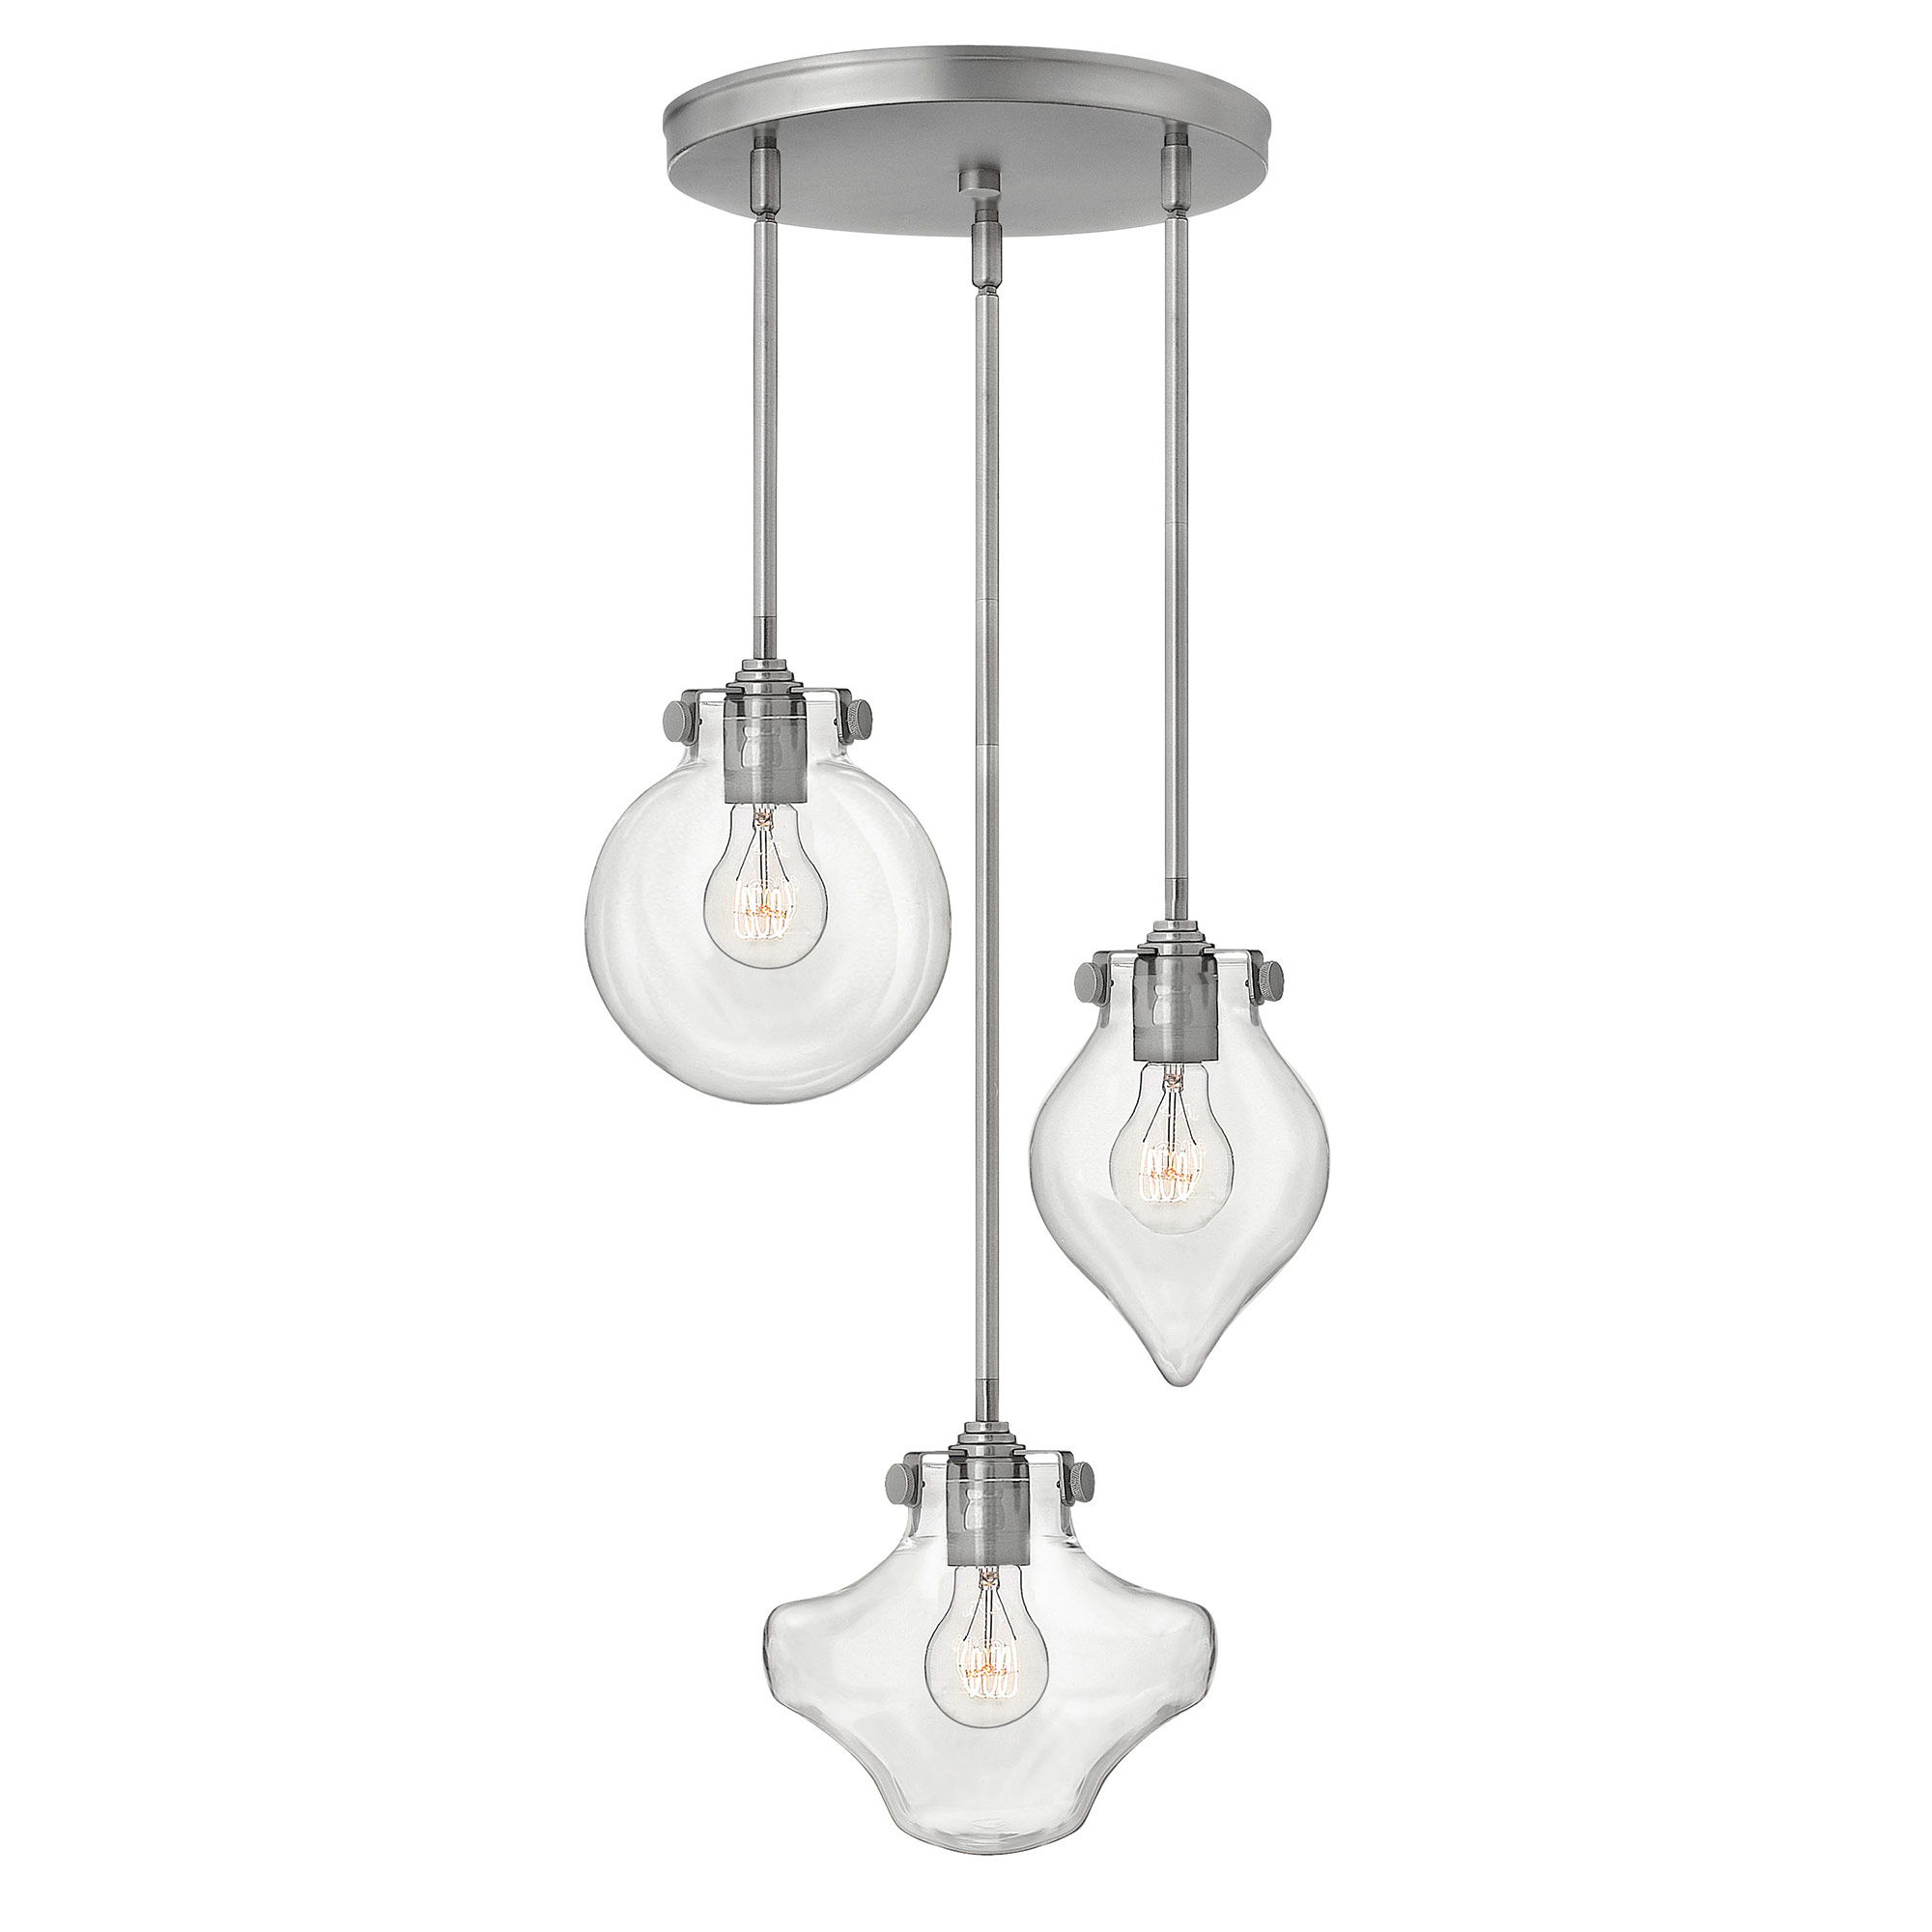 Congress multi light pendant by hinkley lighting 3198an aloadofball Images